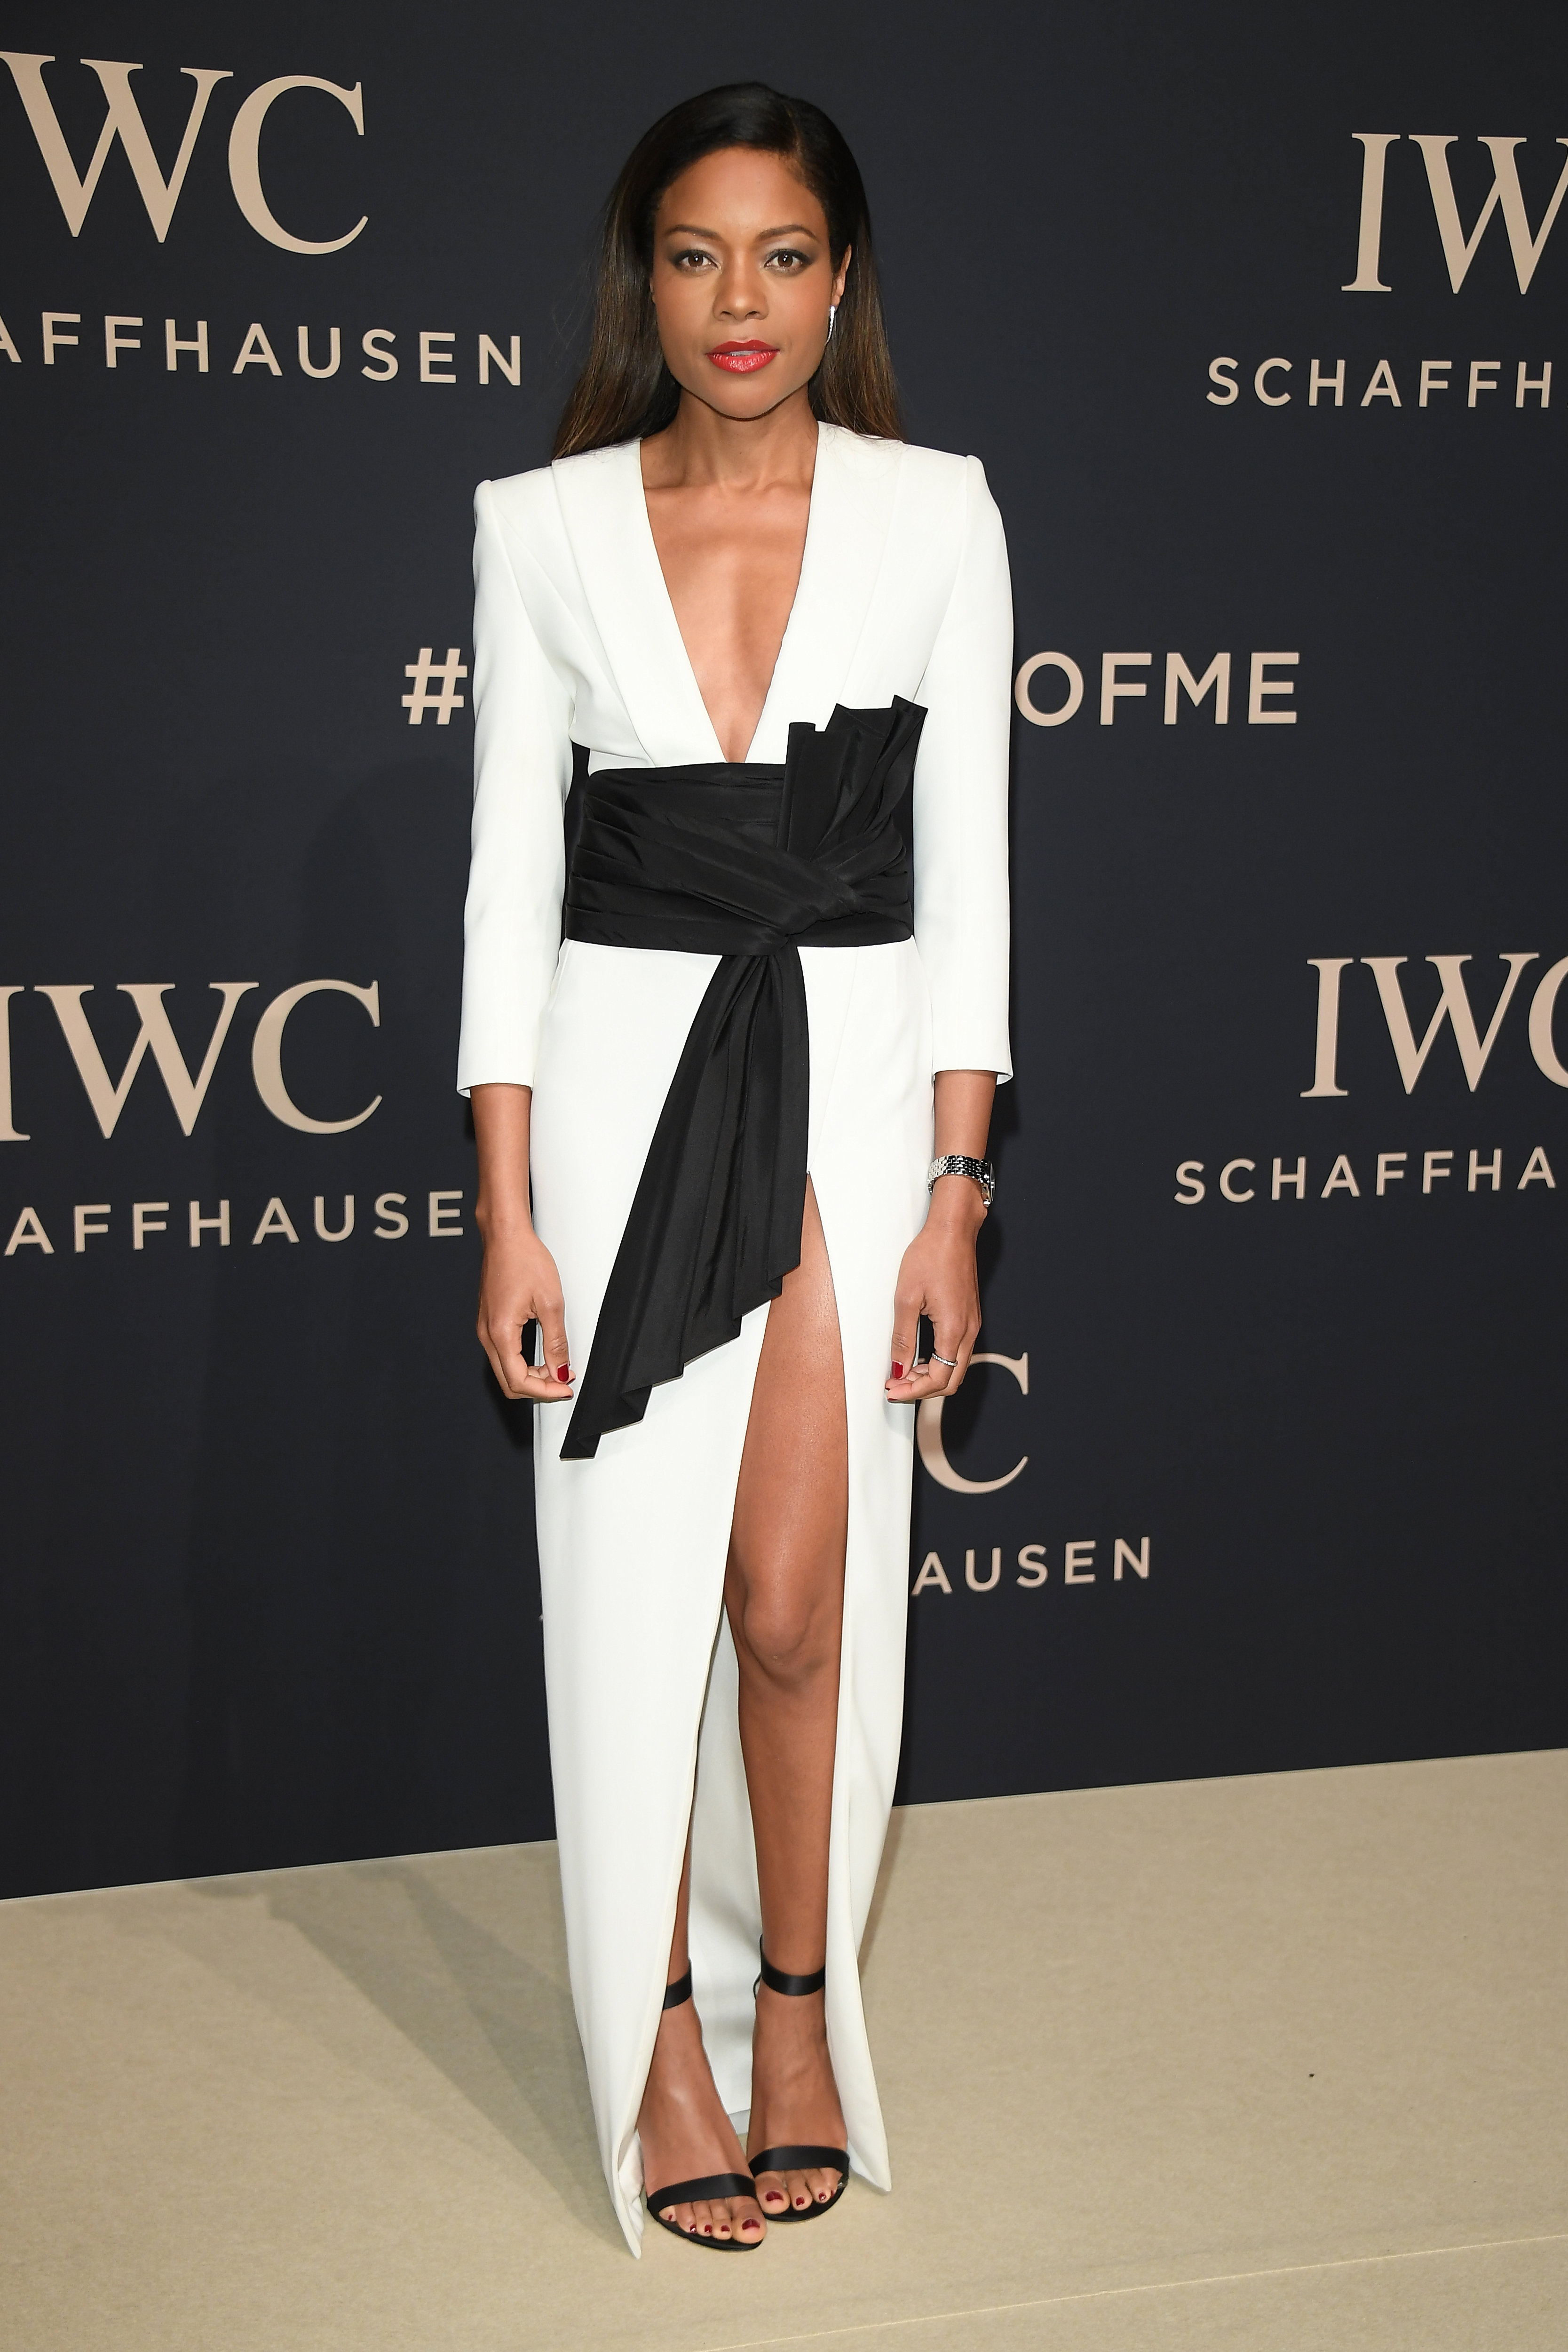 IWC Schaffhausen at SIHH 2017 'Decoding the Beauty of Time' Gala Dinner - Arrivals